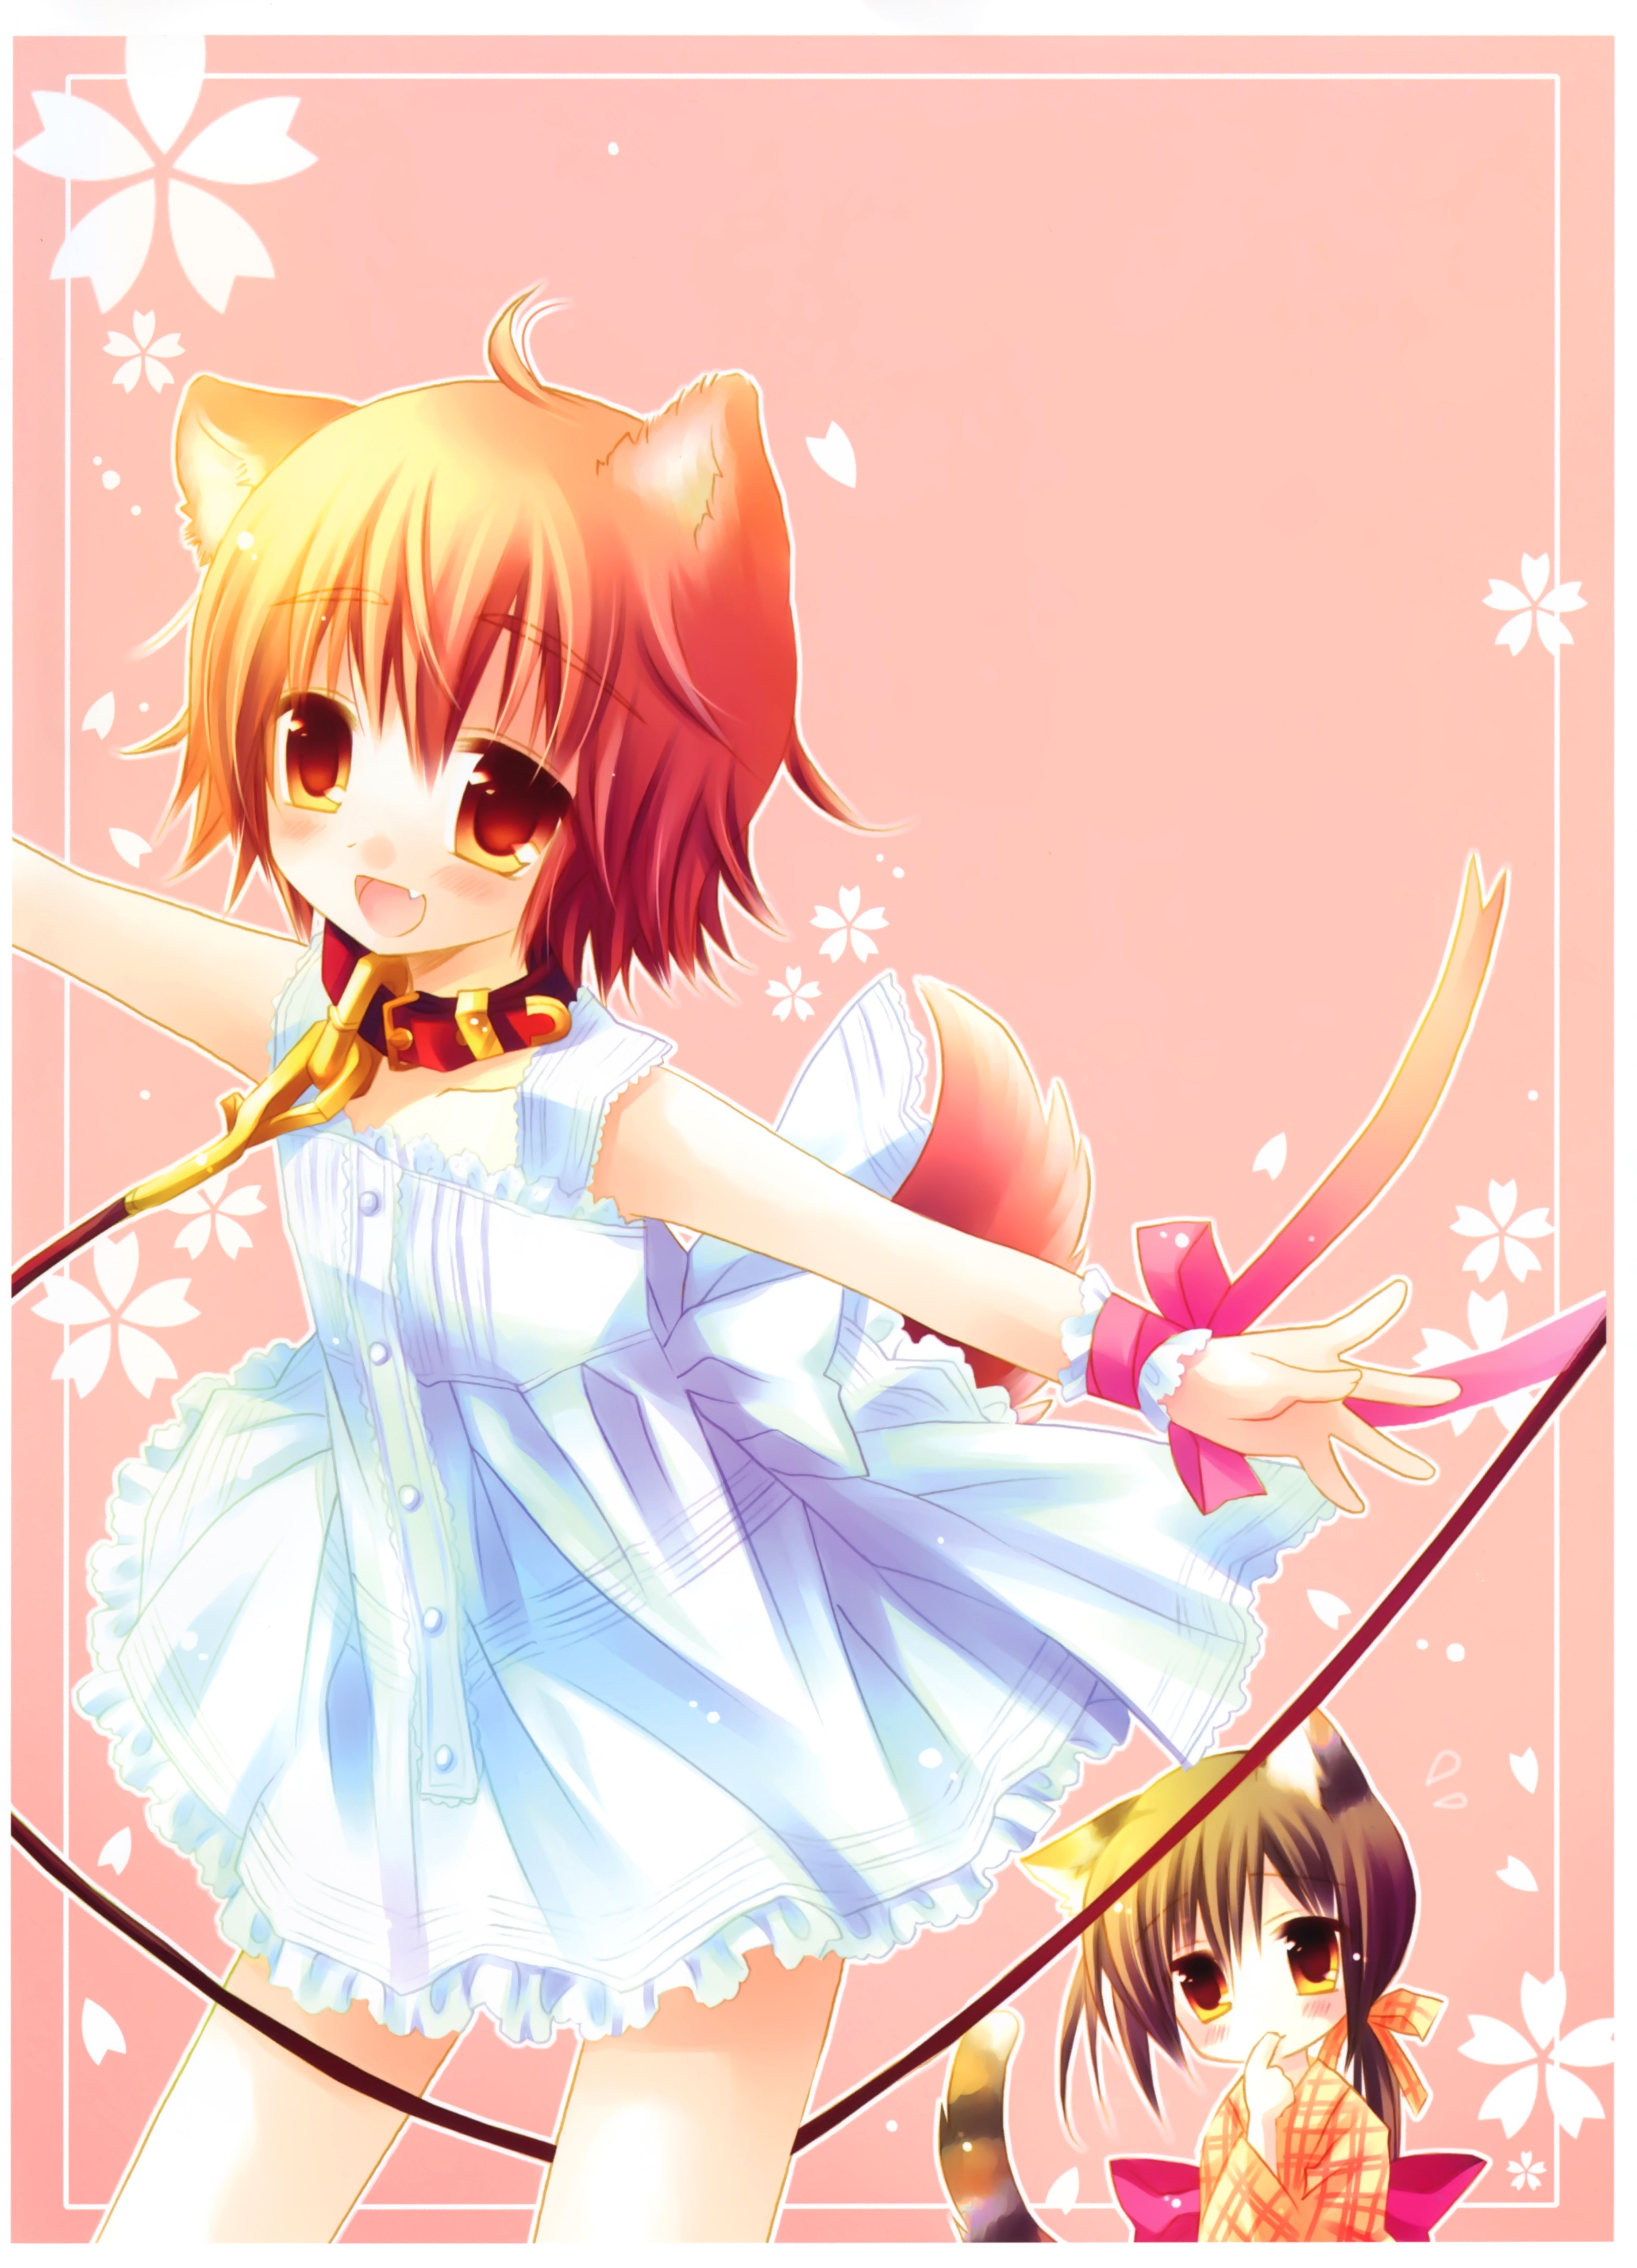 Must see Pet Anime Adorable Dog - a211a165cf4aee02501037d9bf1e83f2  You Should Have_623848  .jpg